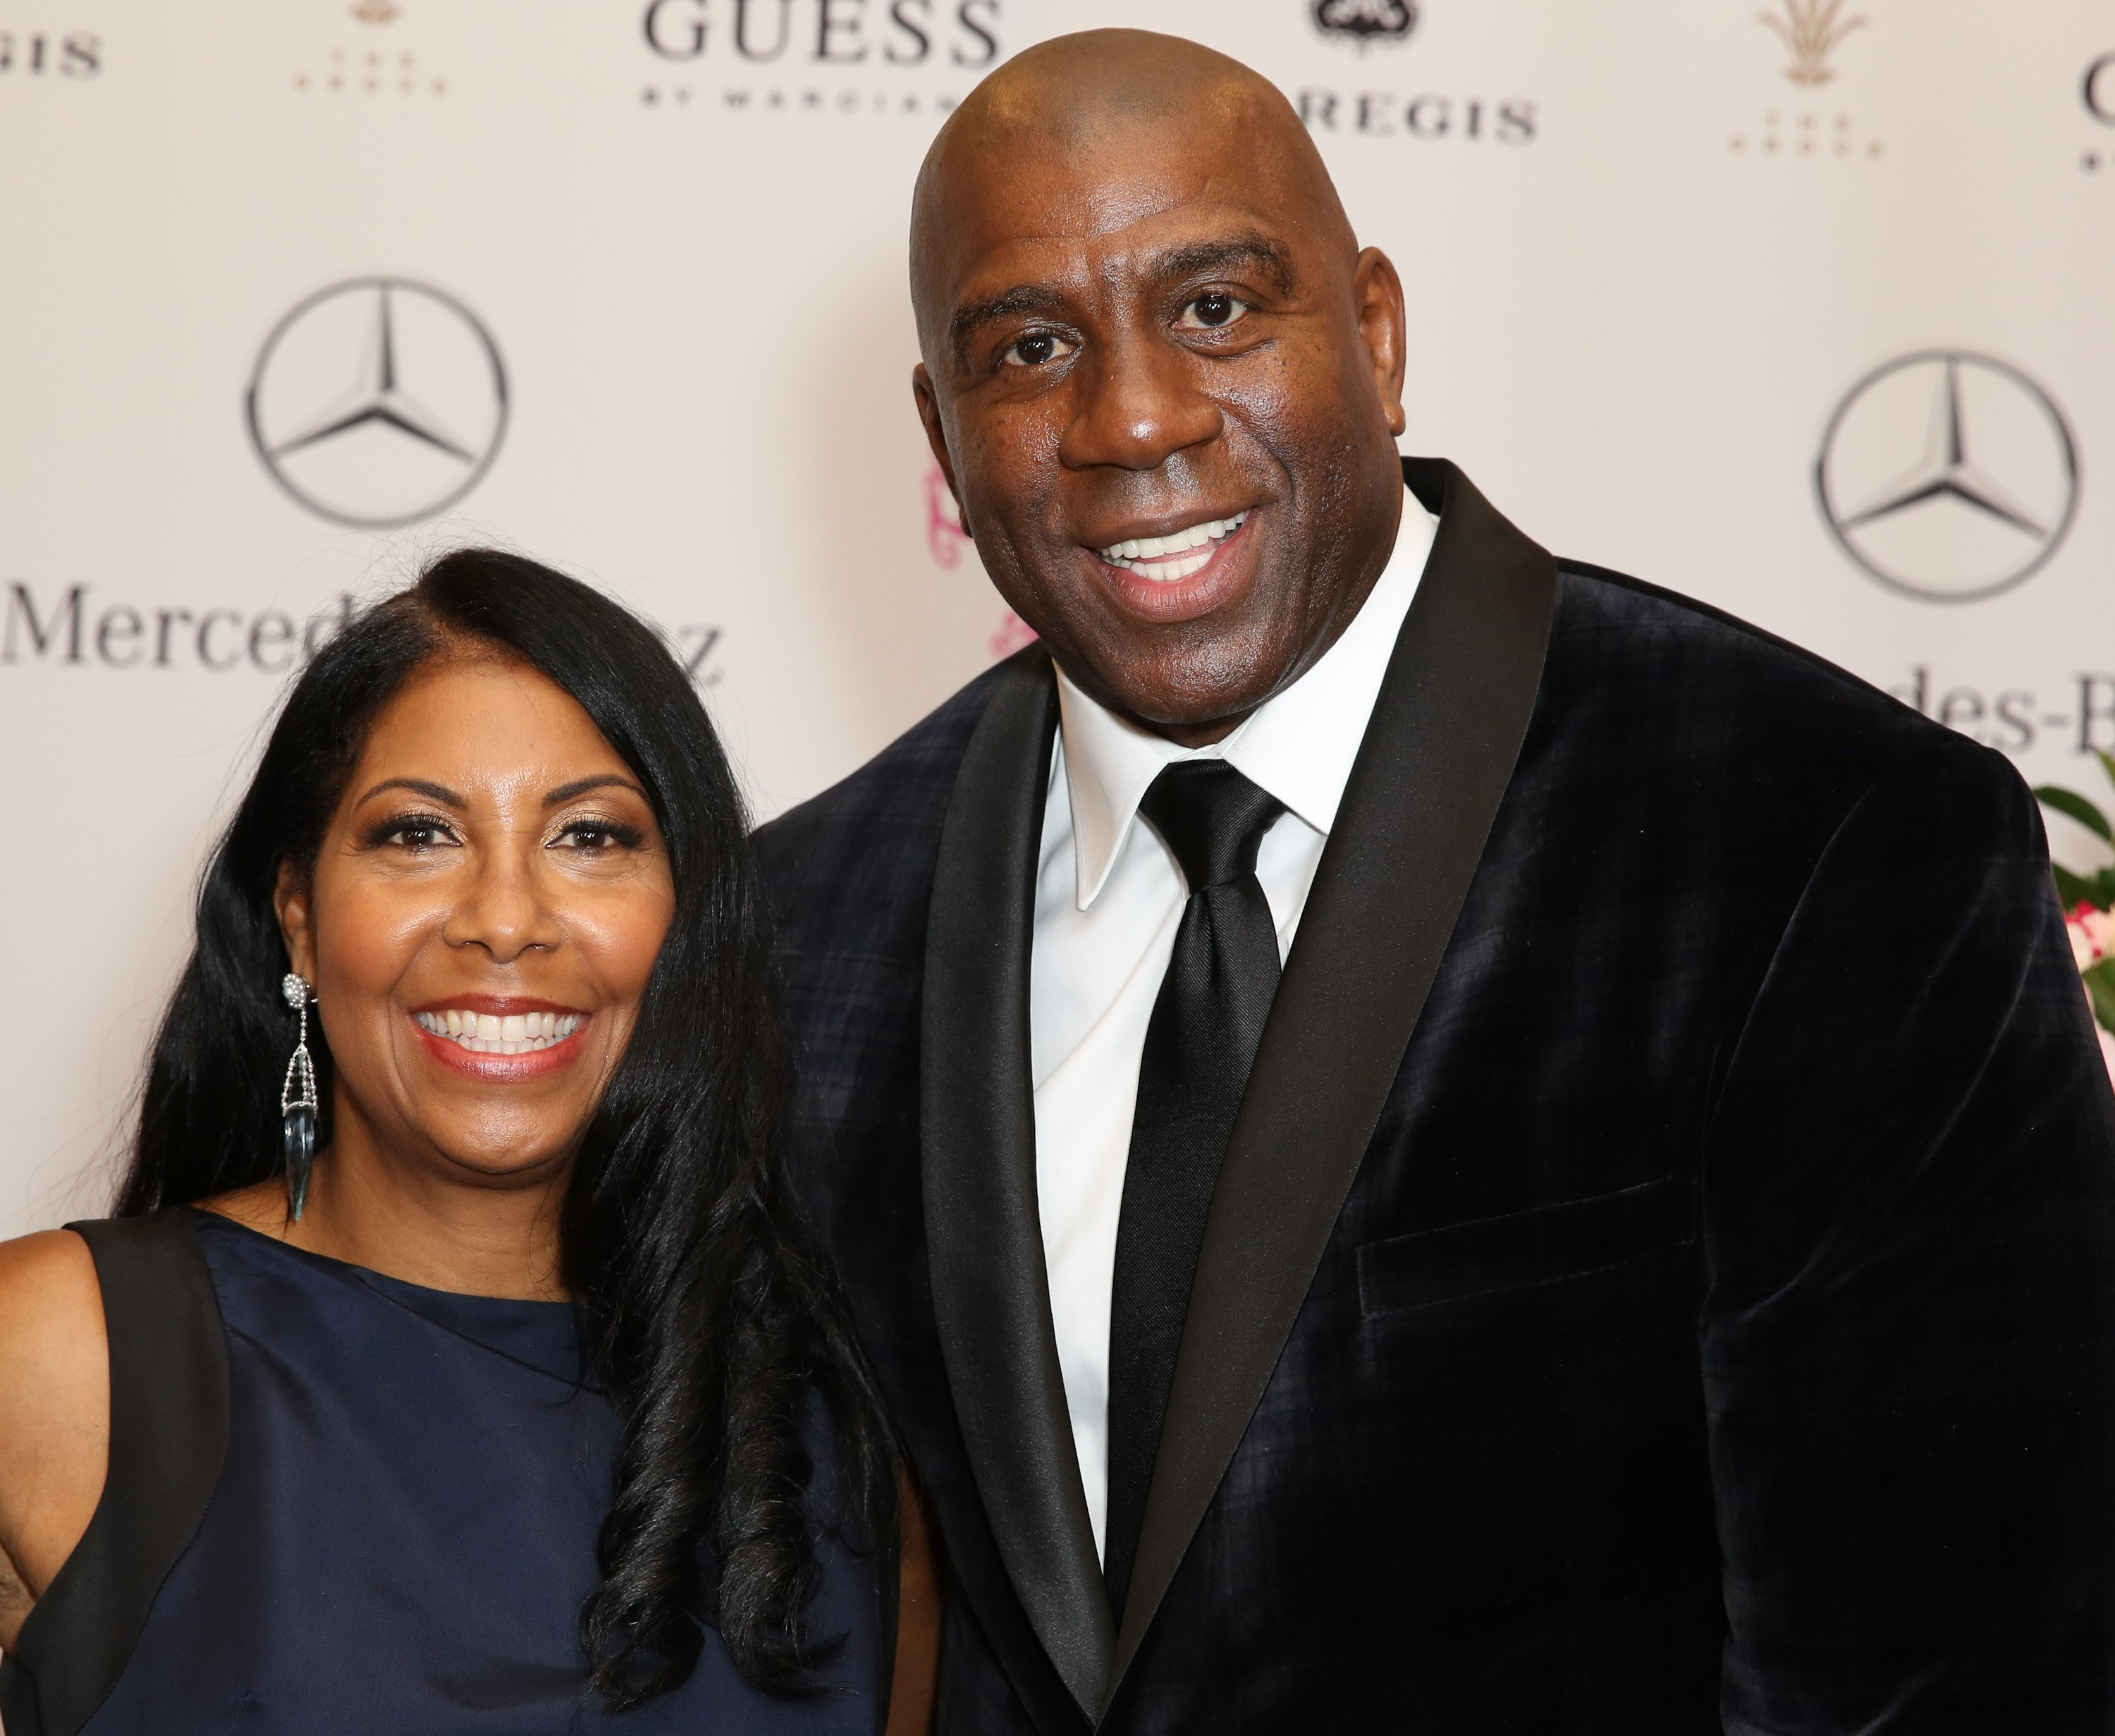 Cookie Johnson & Earvin 'Magic' Johnson at Mercedes-Benz presents the Carousel of Hope Ball benefitting Barbara Davis Center for Diabetes on Oct. 11, 2014 in California | Photo: Getty Images